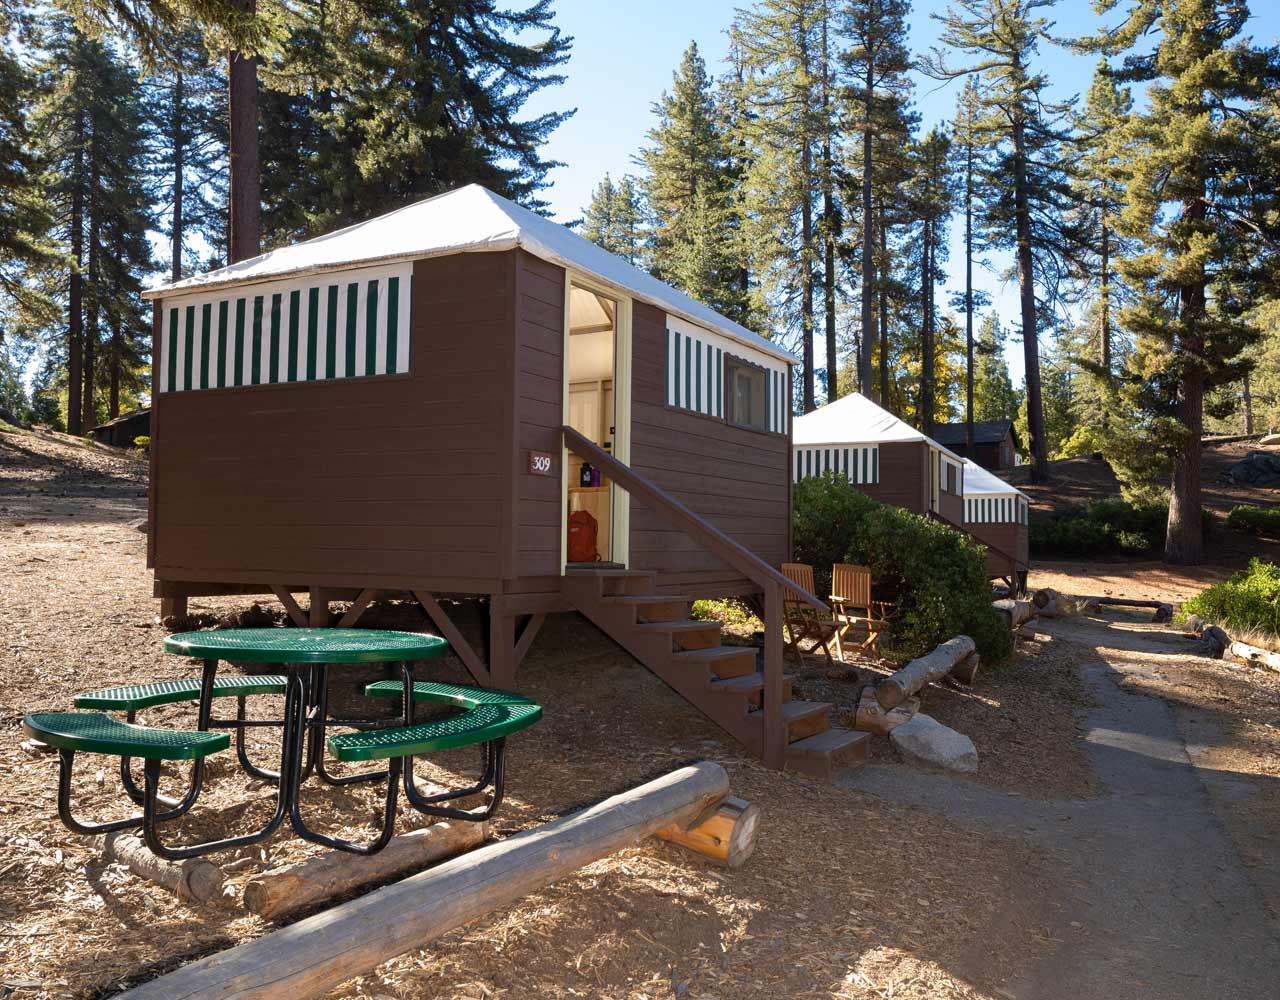 Several tent cabins at Grant Grove Cabins in Kings Canyon National Park